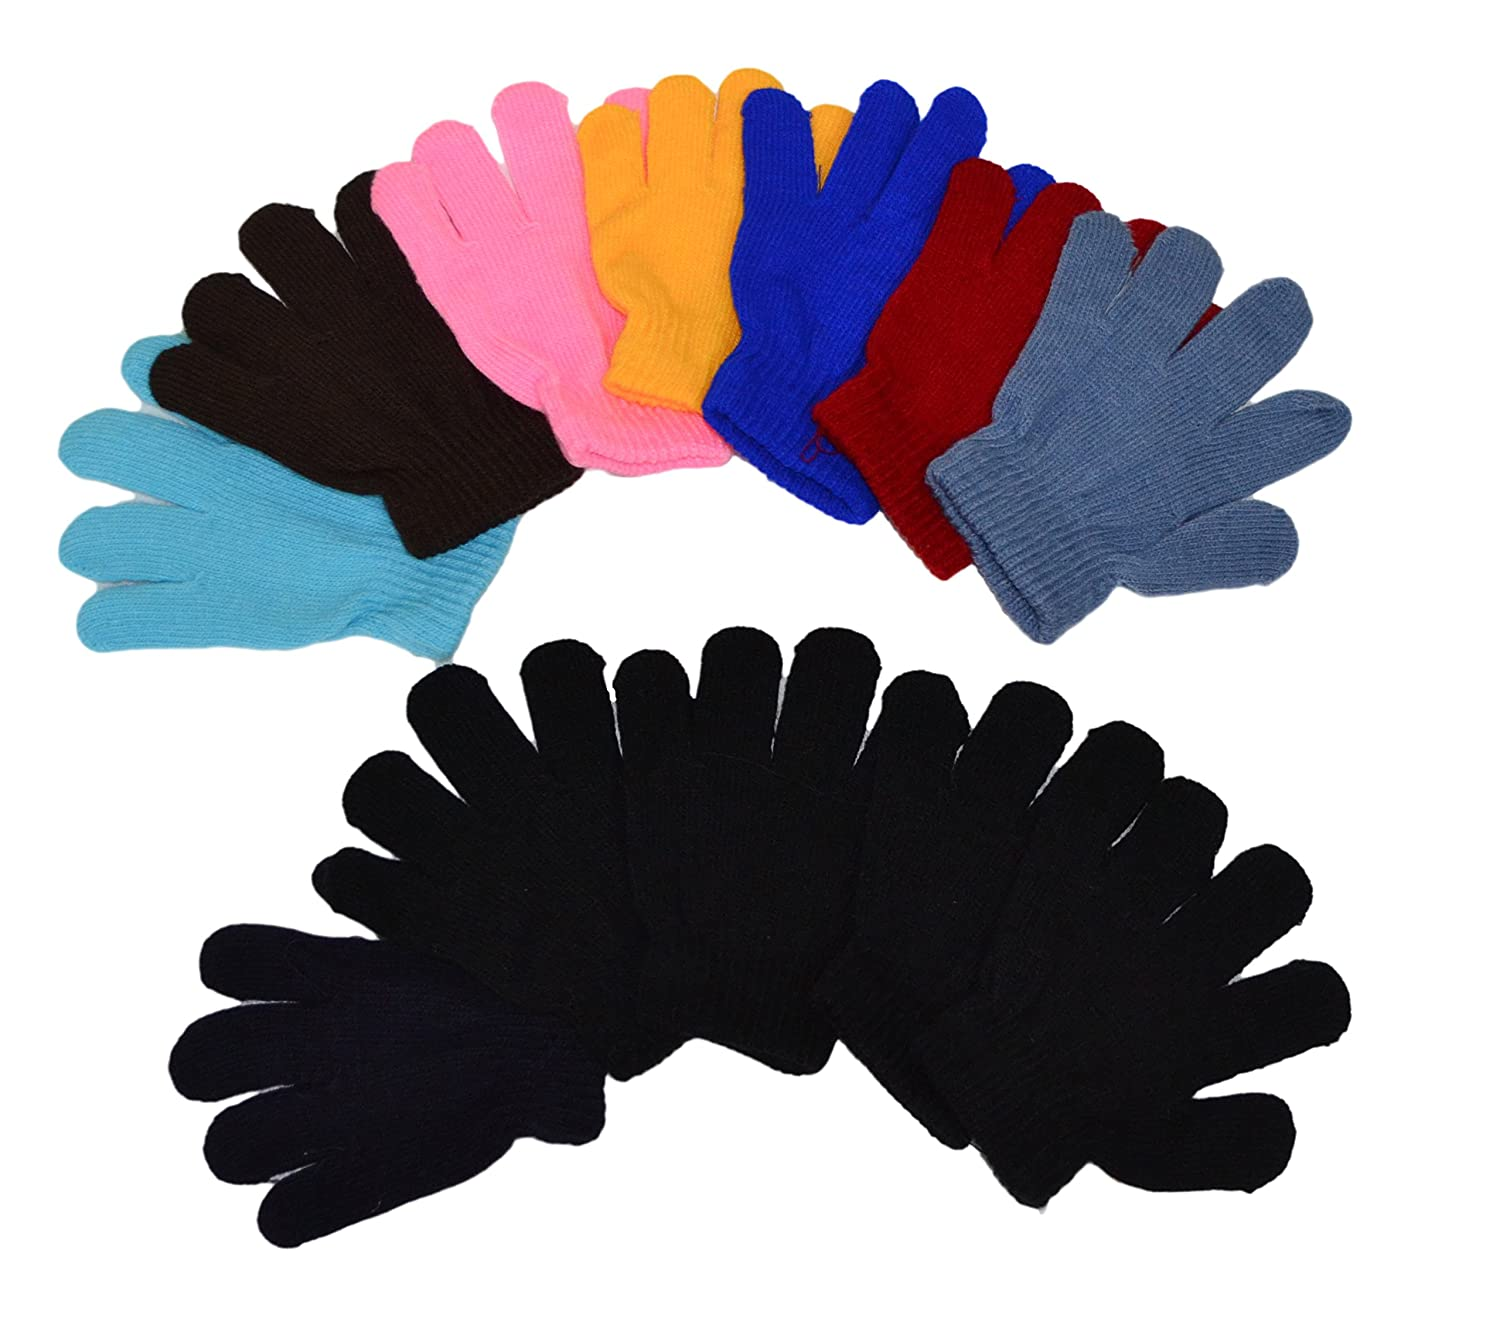 12 pairs of kids mittens